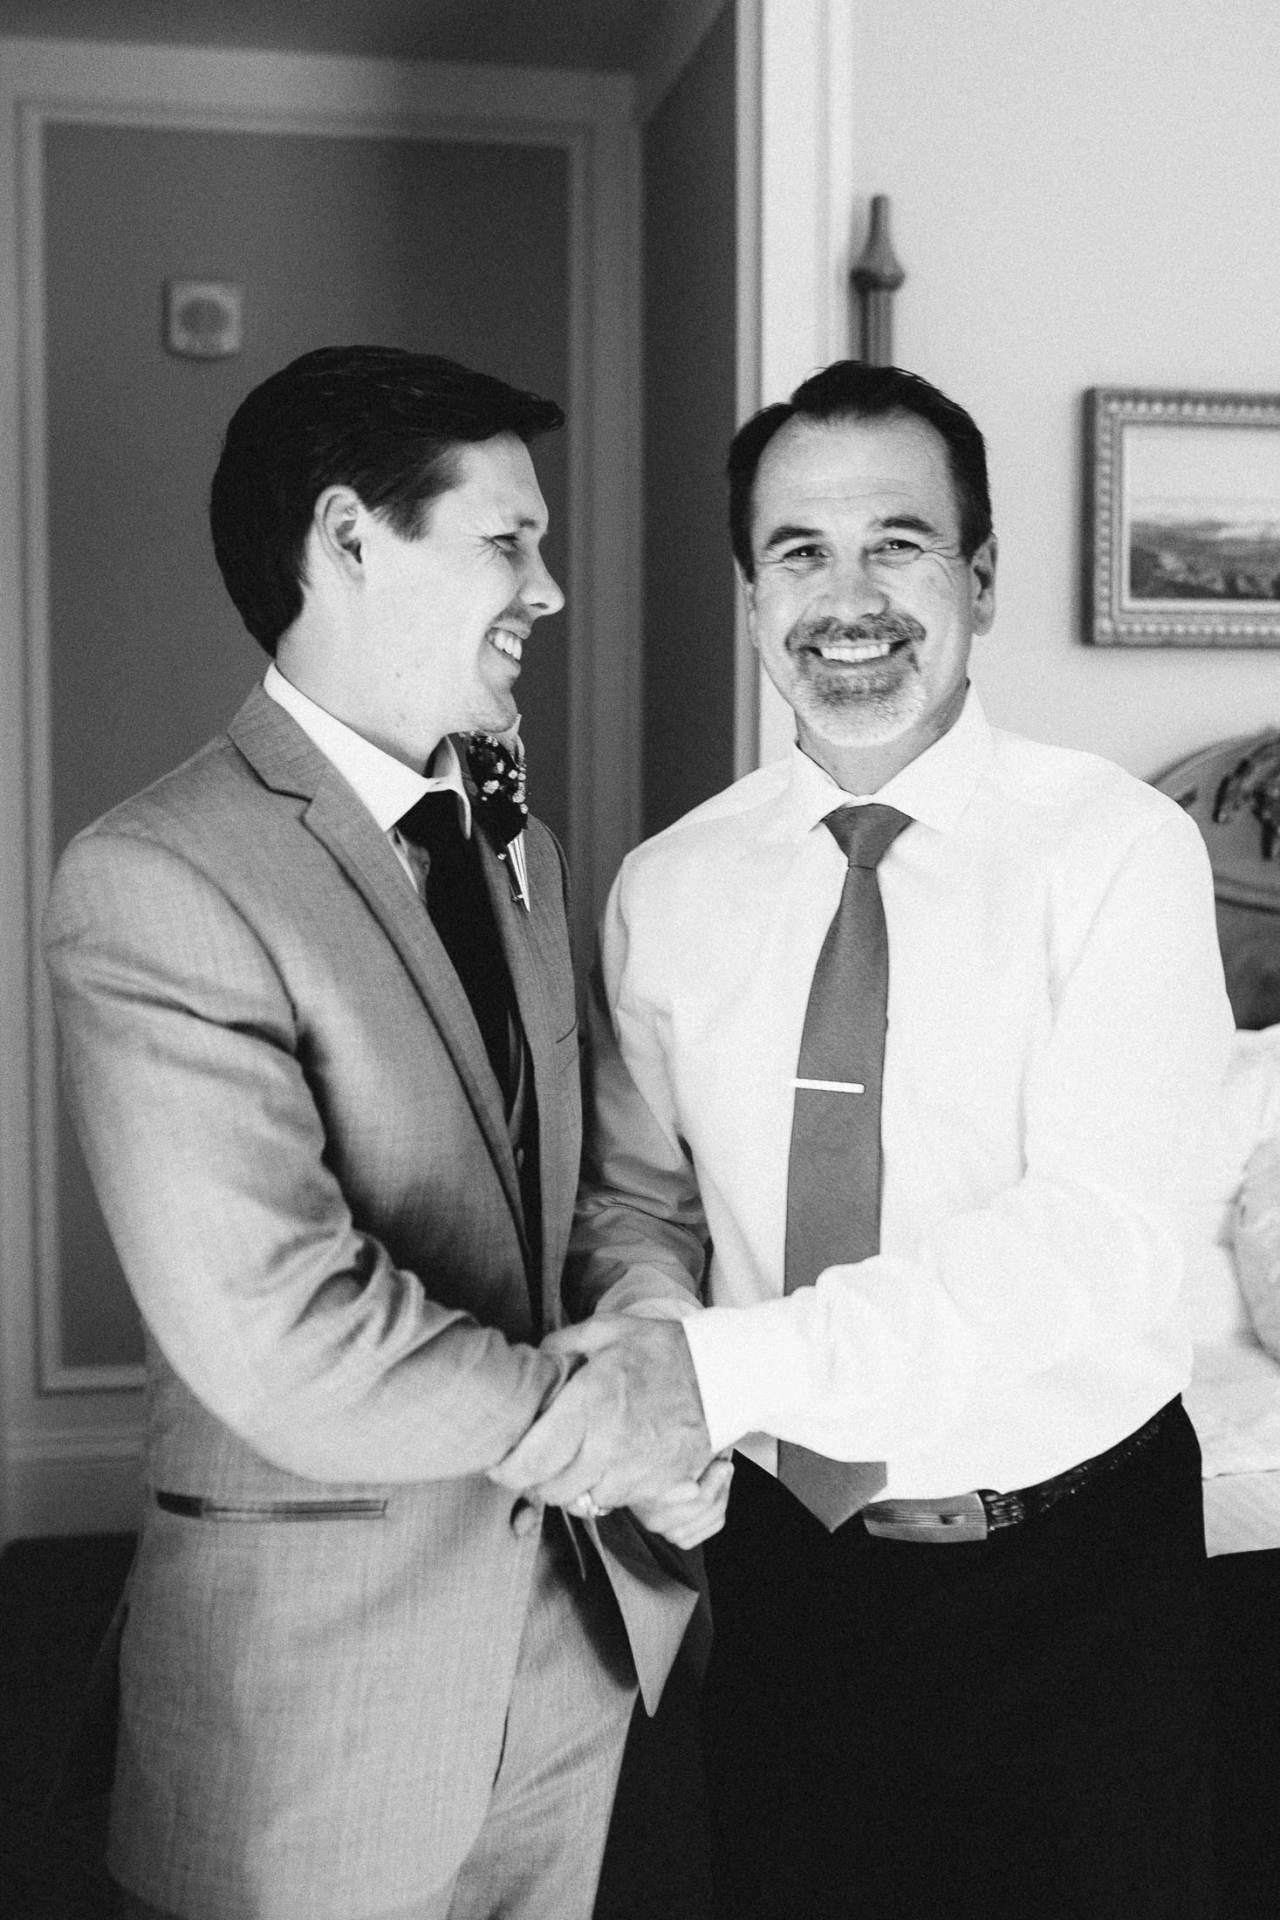 Black and white photo of groom shaking hands and smiling with his father on his wedding day at The Broadmoor.